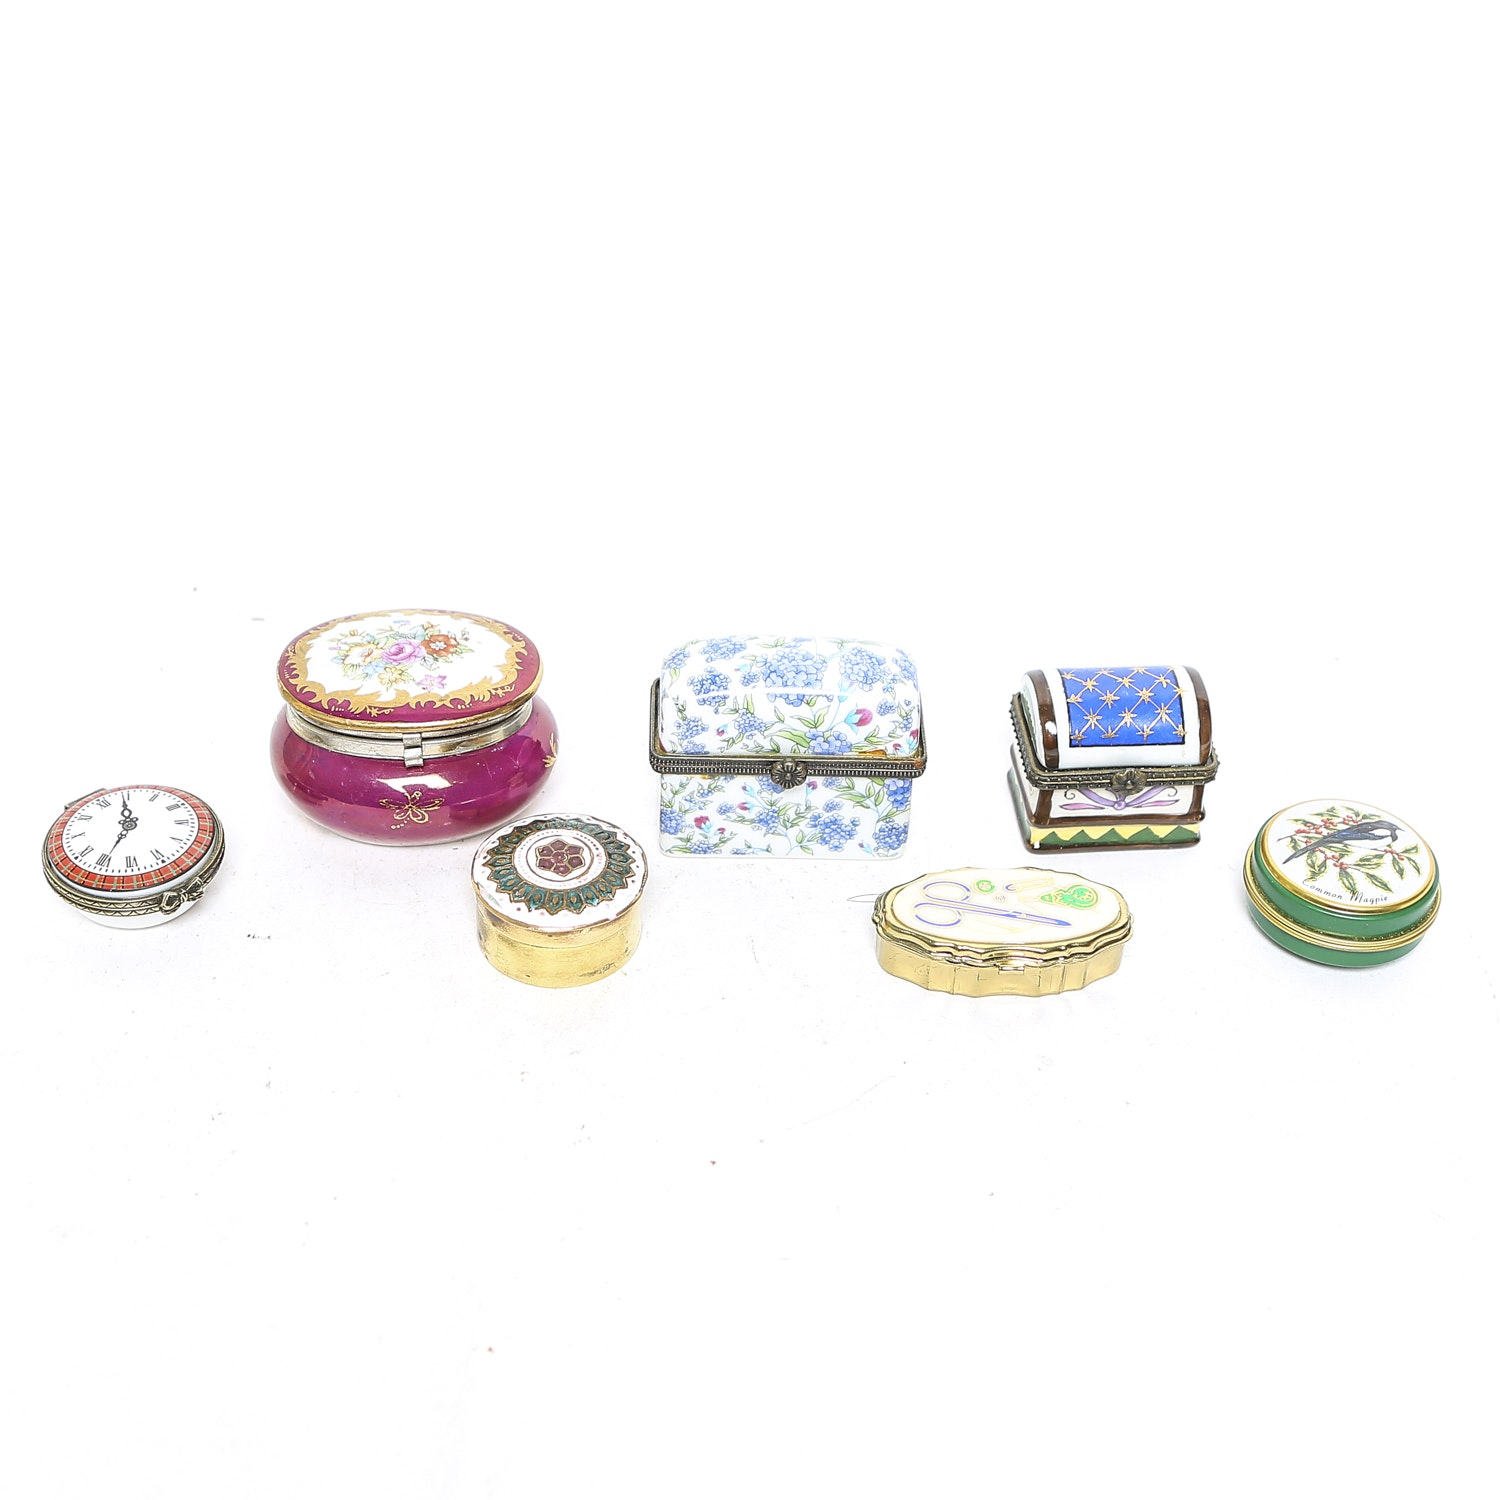 Grouping of Seven Trinket Boxes